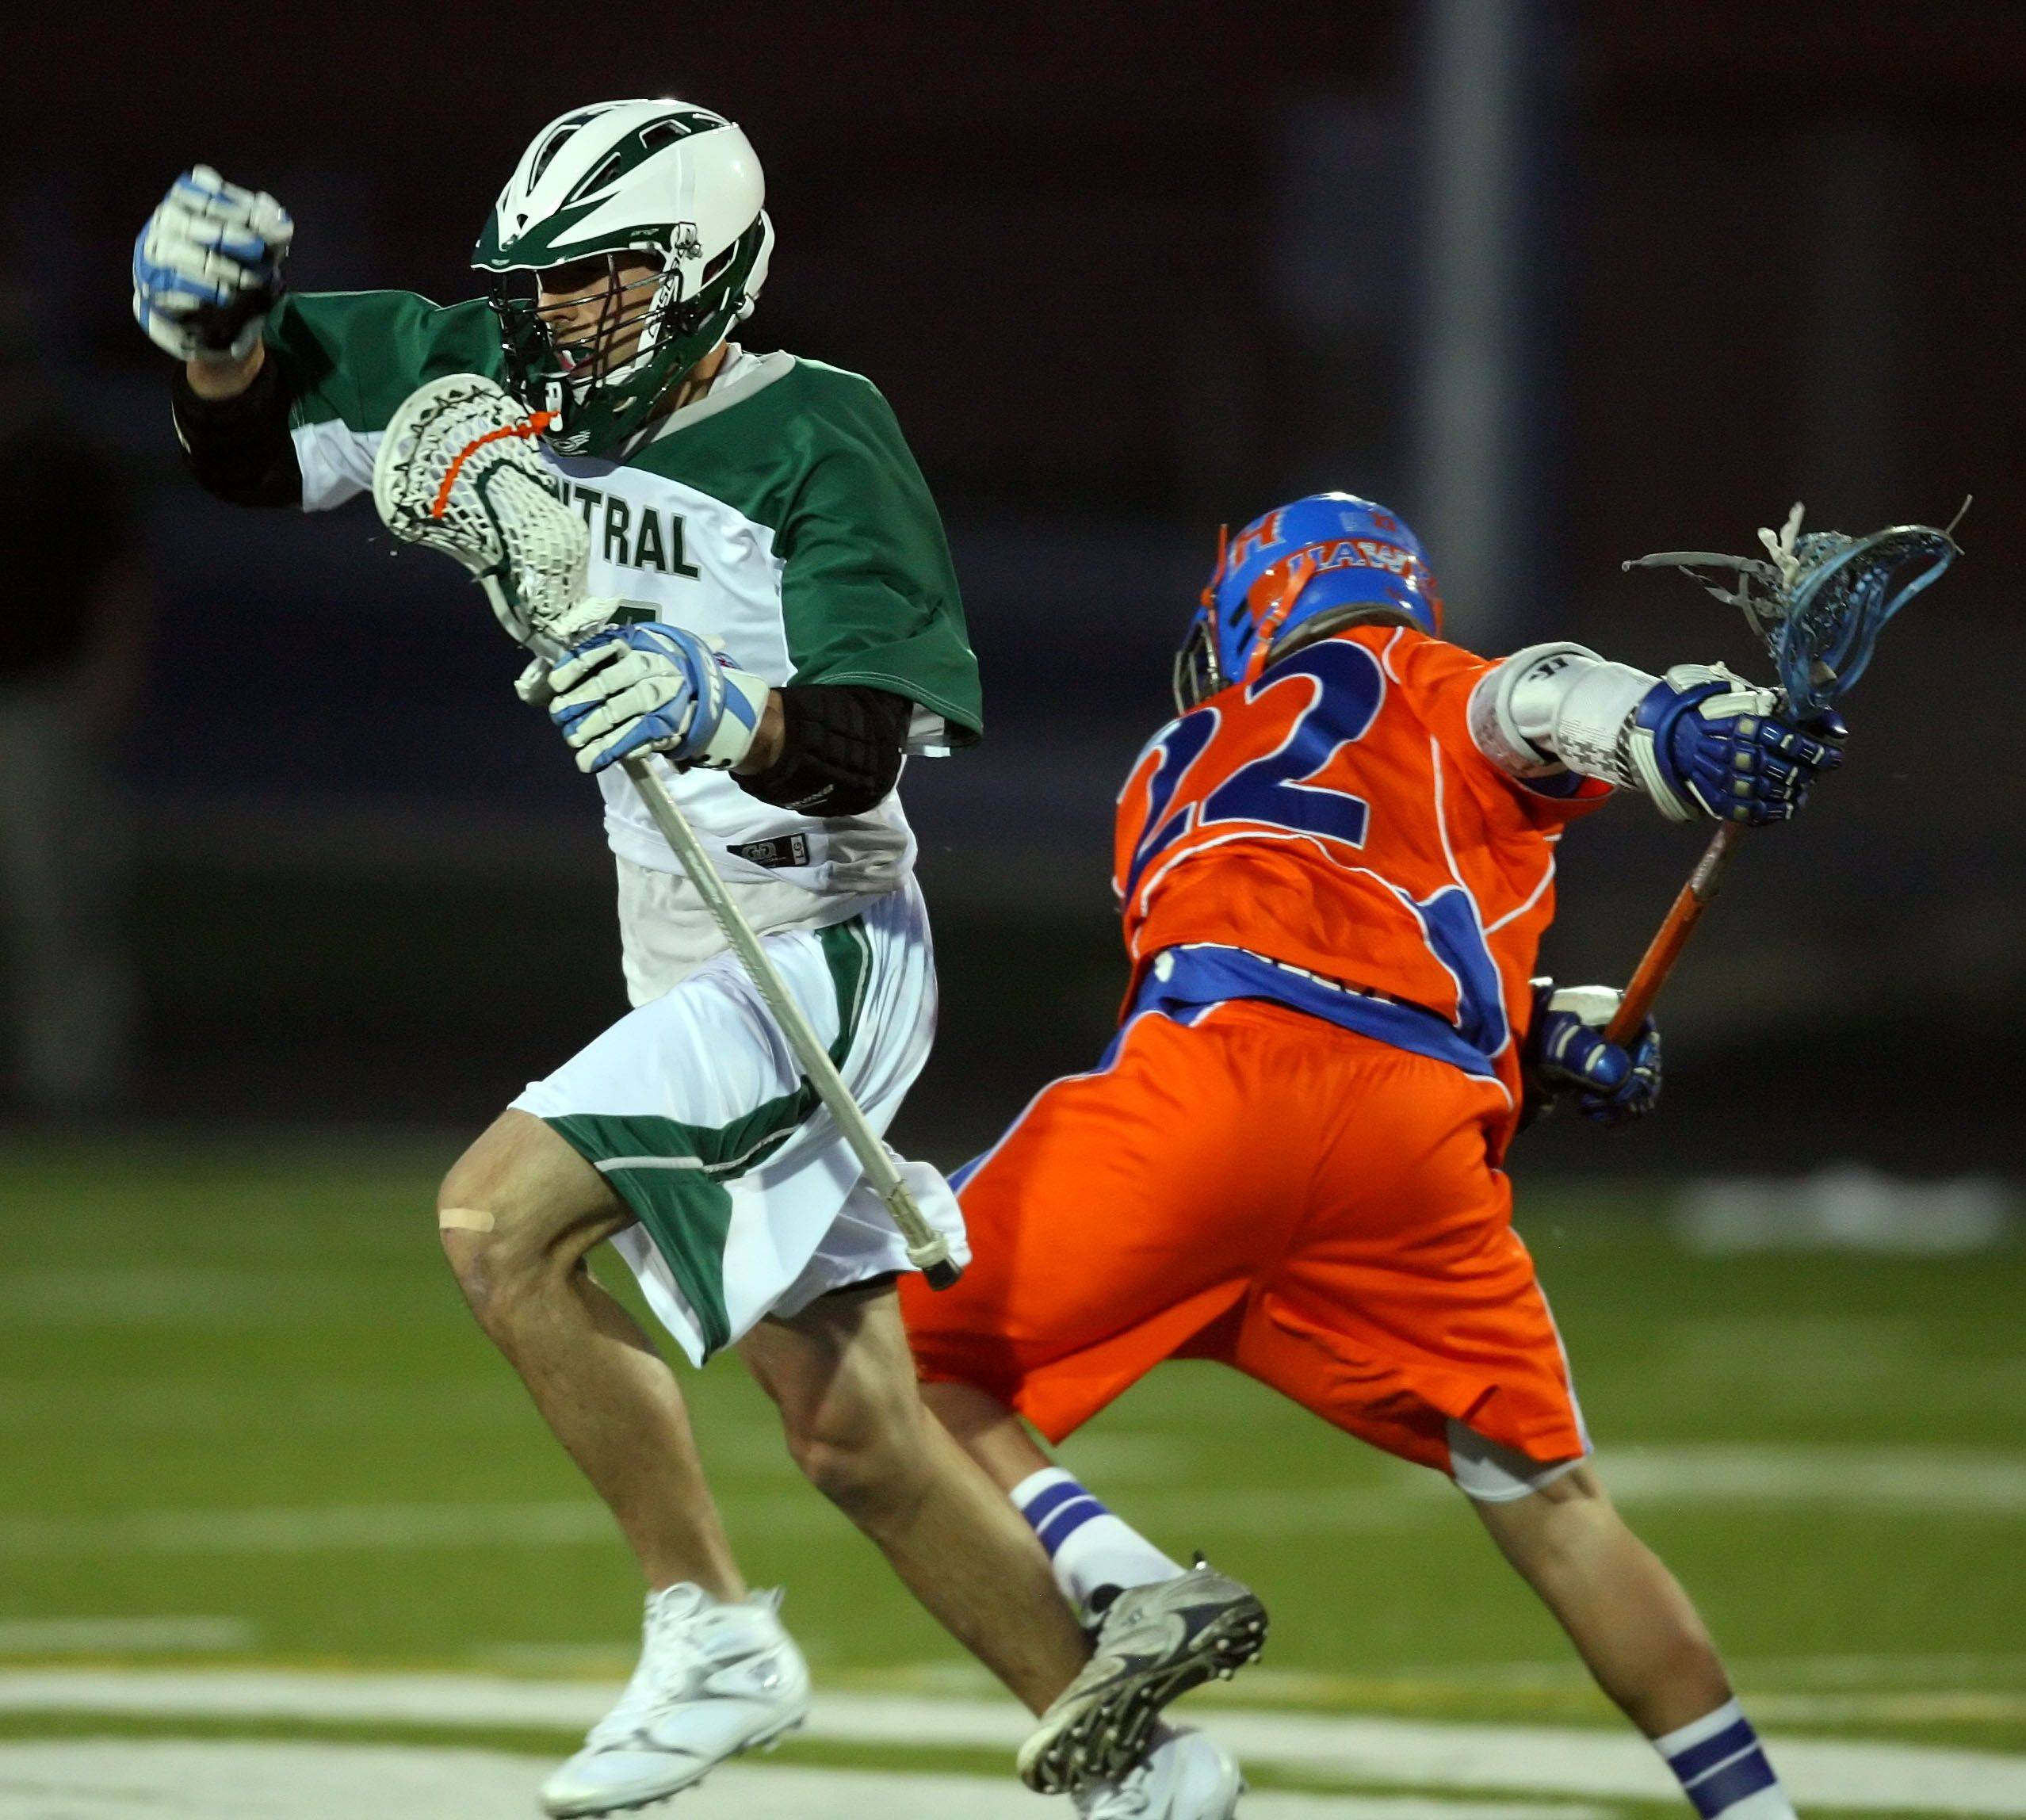 Grayslake Central's Jake Paust drives past Hoffman Estates' Steven Gliniewicz during their game Wednesday night at Grayslake Central High School.